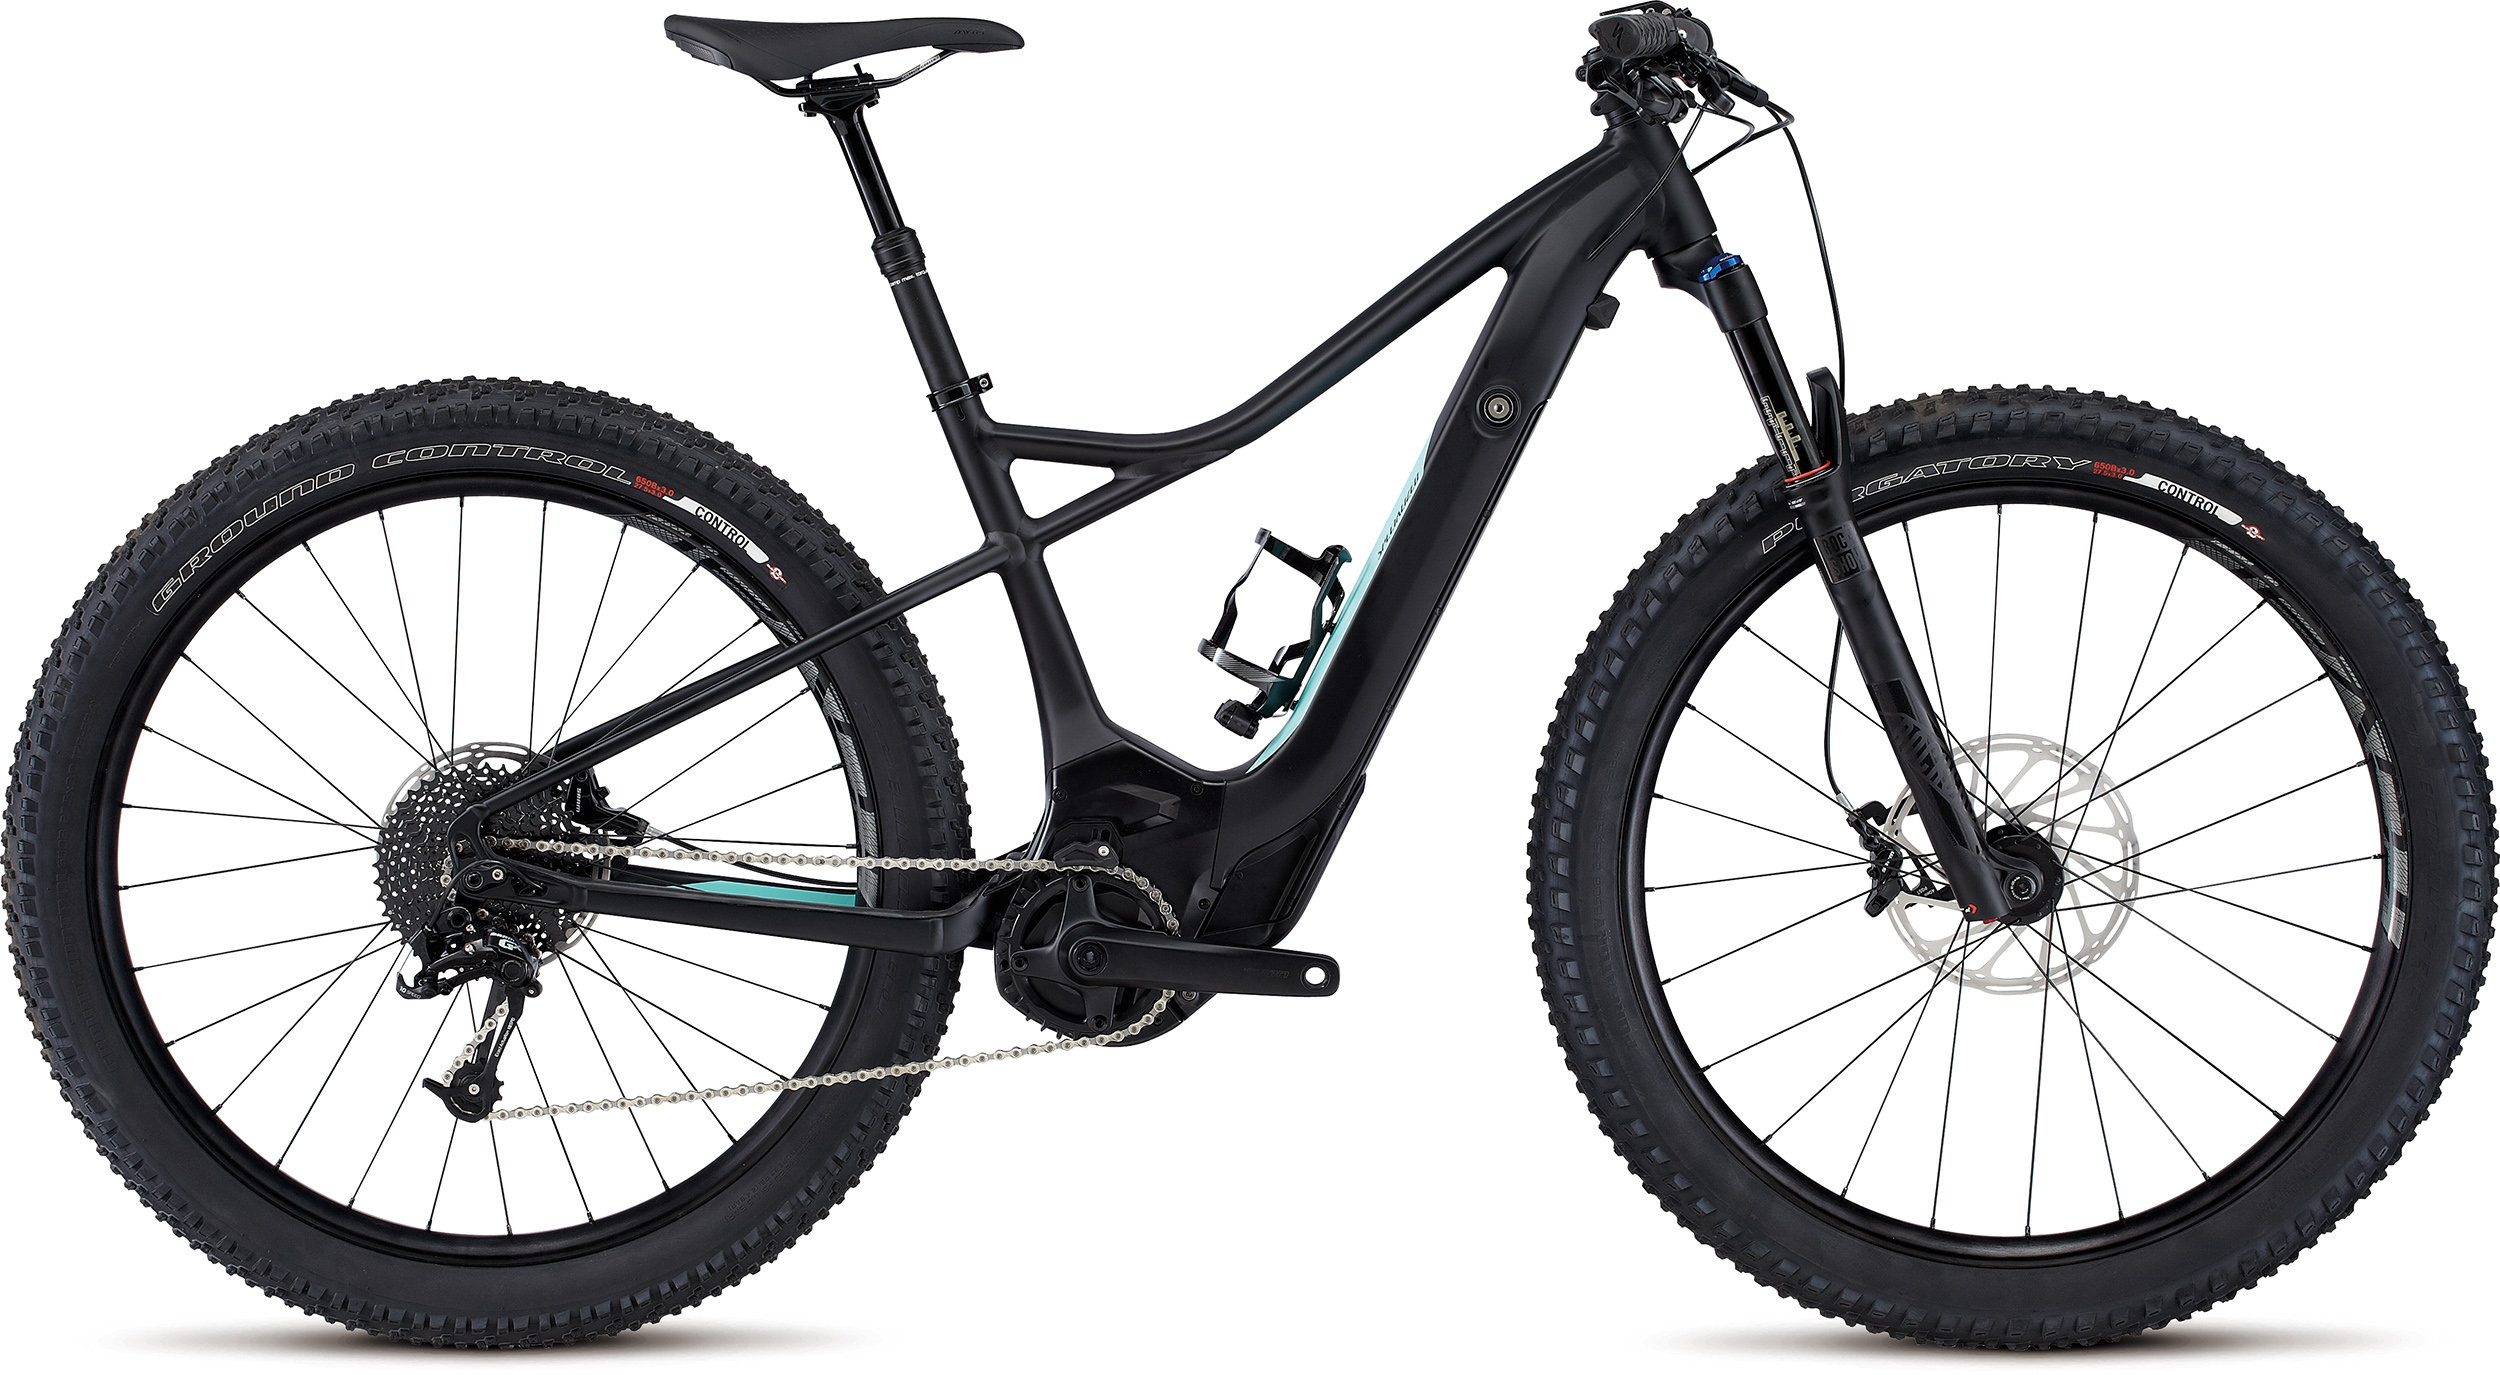 SPECIALIZED LEVO WMN HT COMP 6FATTIE CE BLK/LTTUR L - Bike Zone